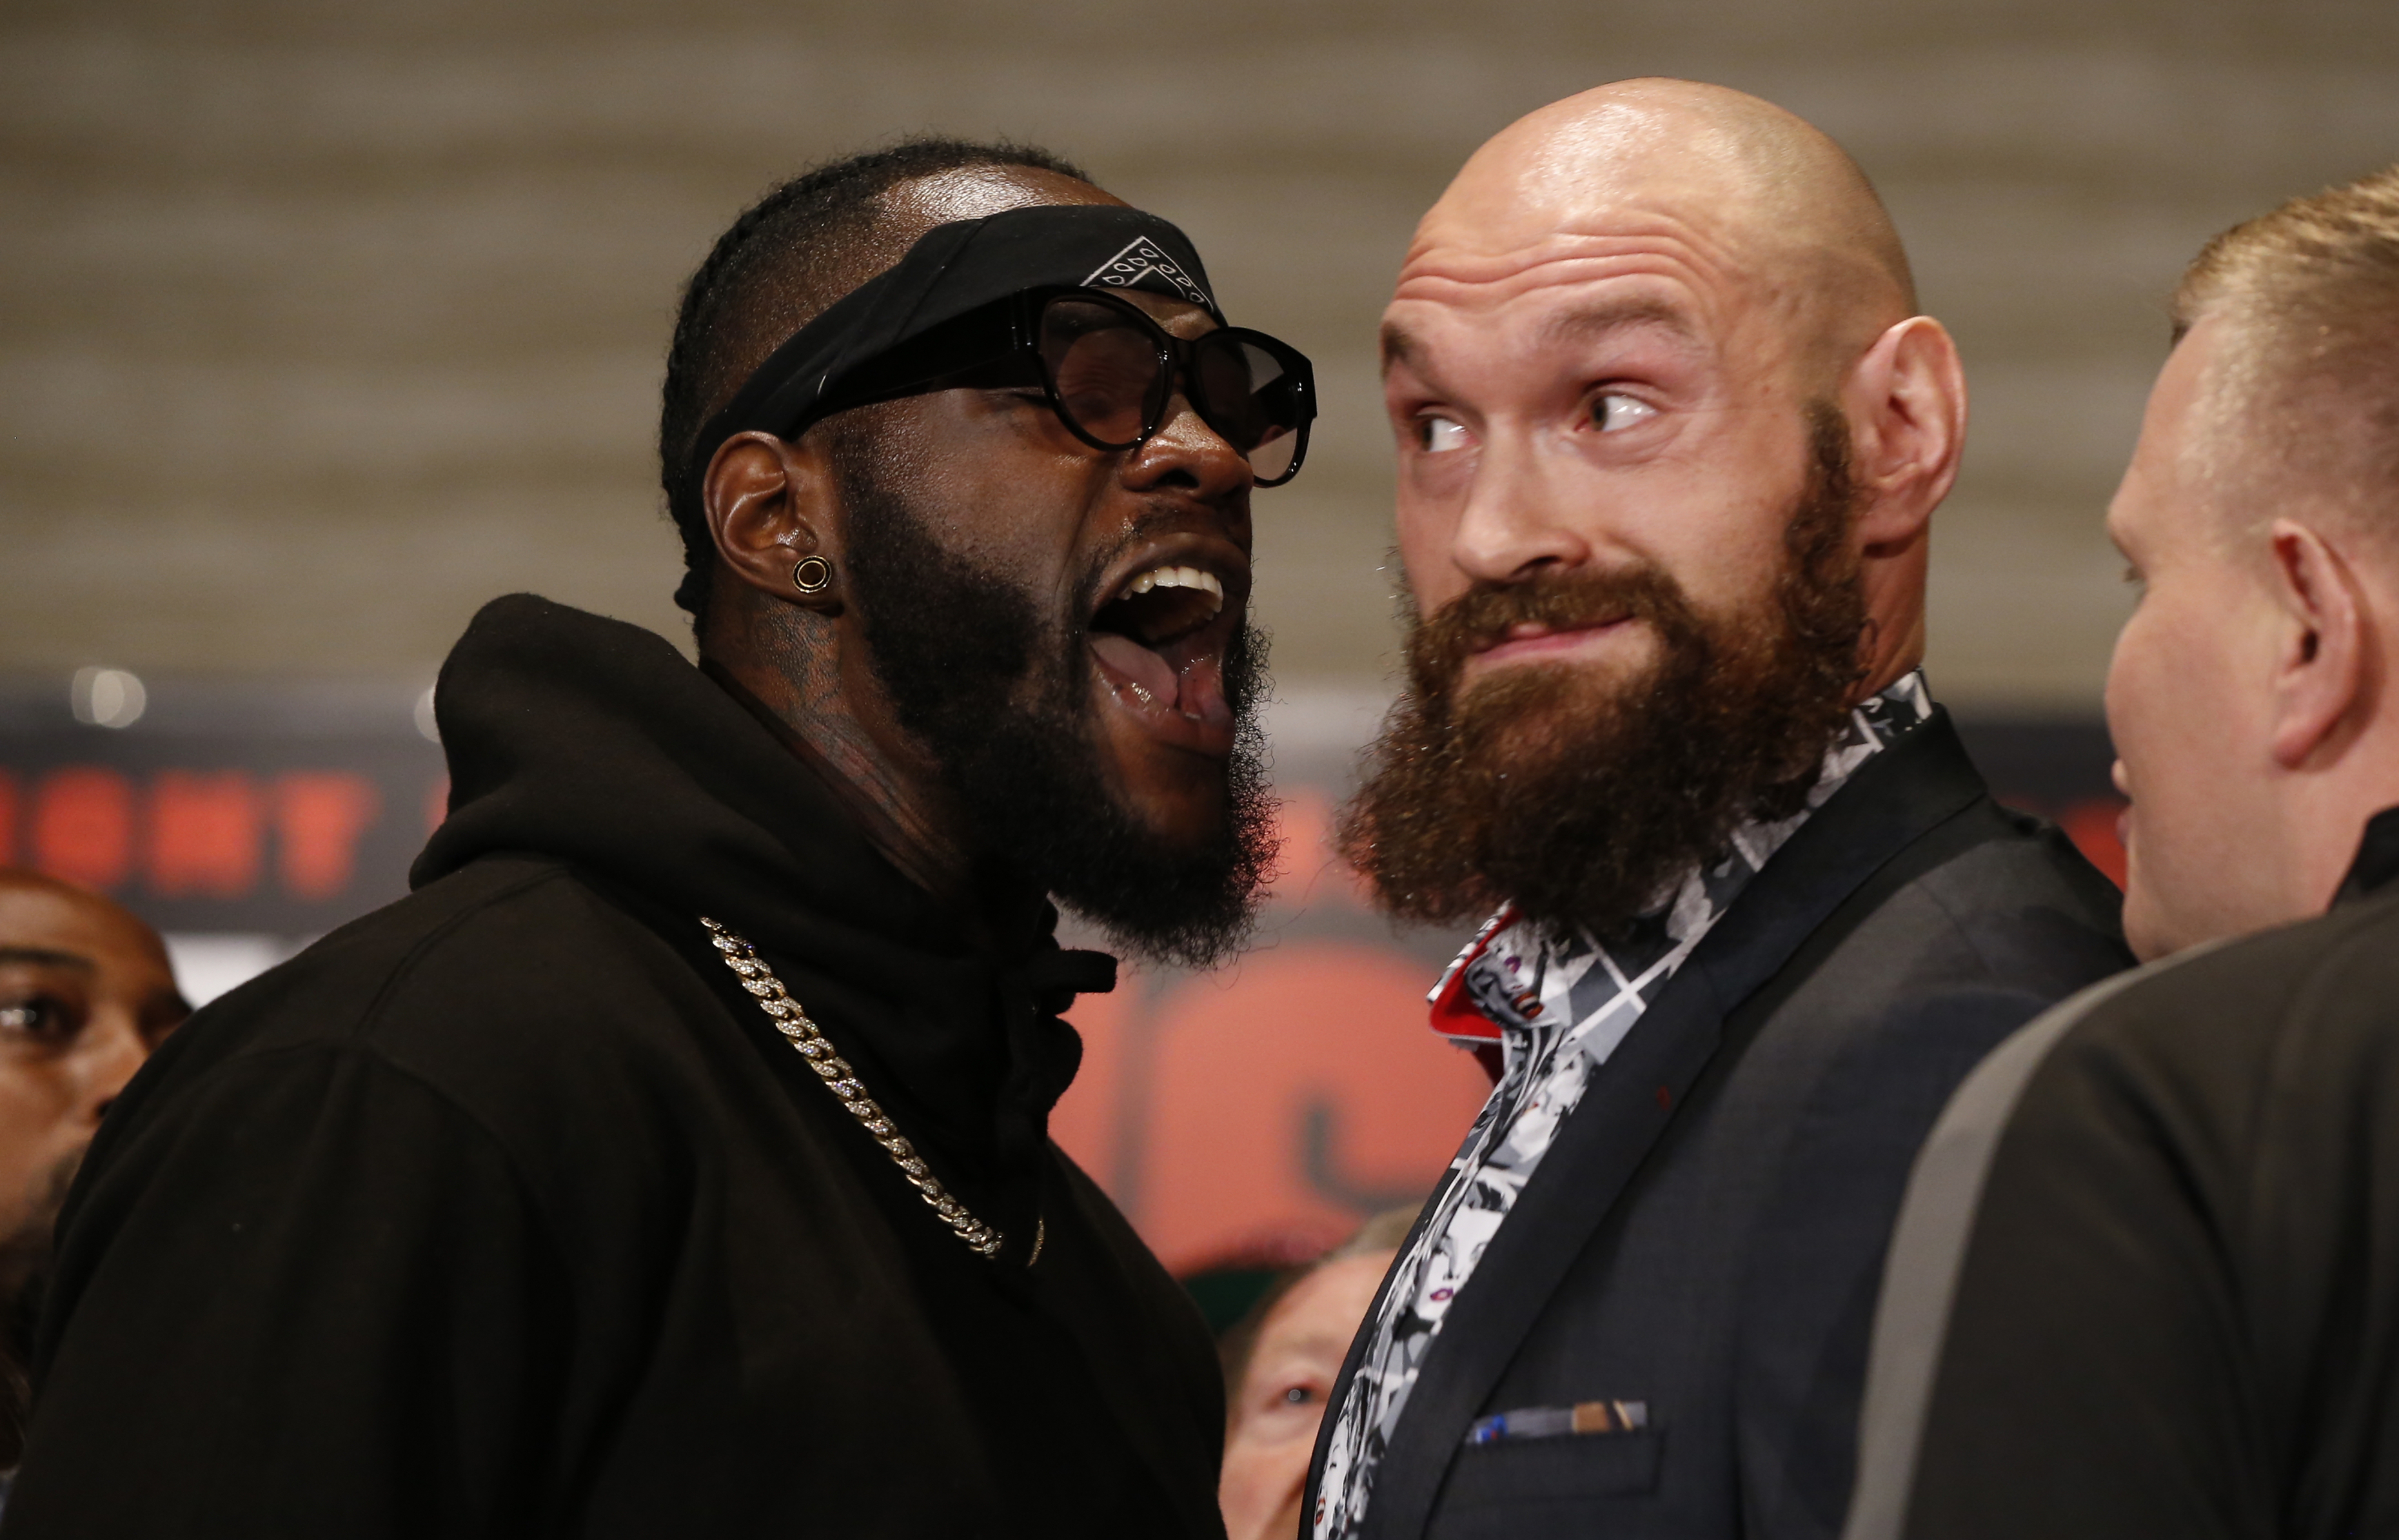 Wilder screaming at Fury but it was him who started the shoving. Image: PA Images